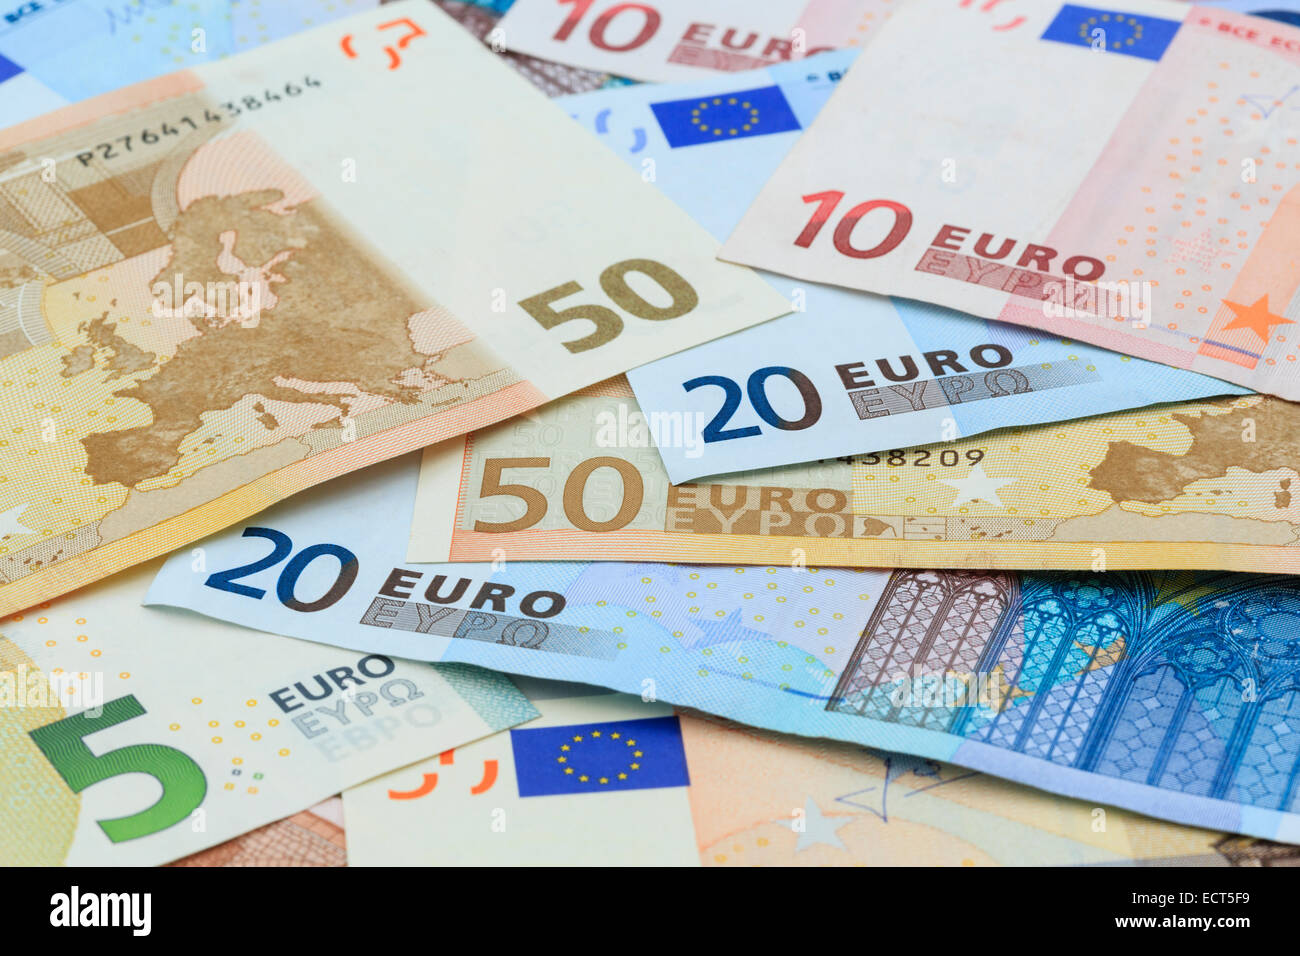 Euros in different denominations of Euro notes from the European Union Eurozone in close-up as a background. Europe - Stock Image